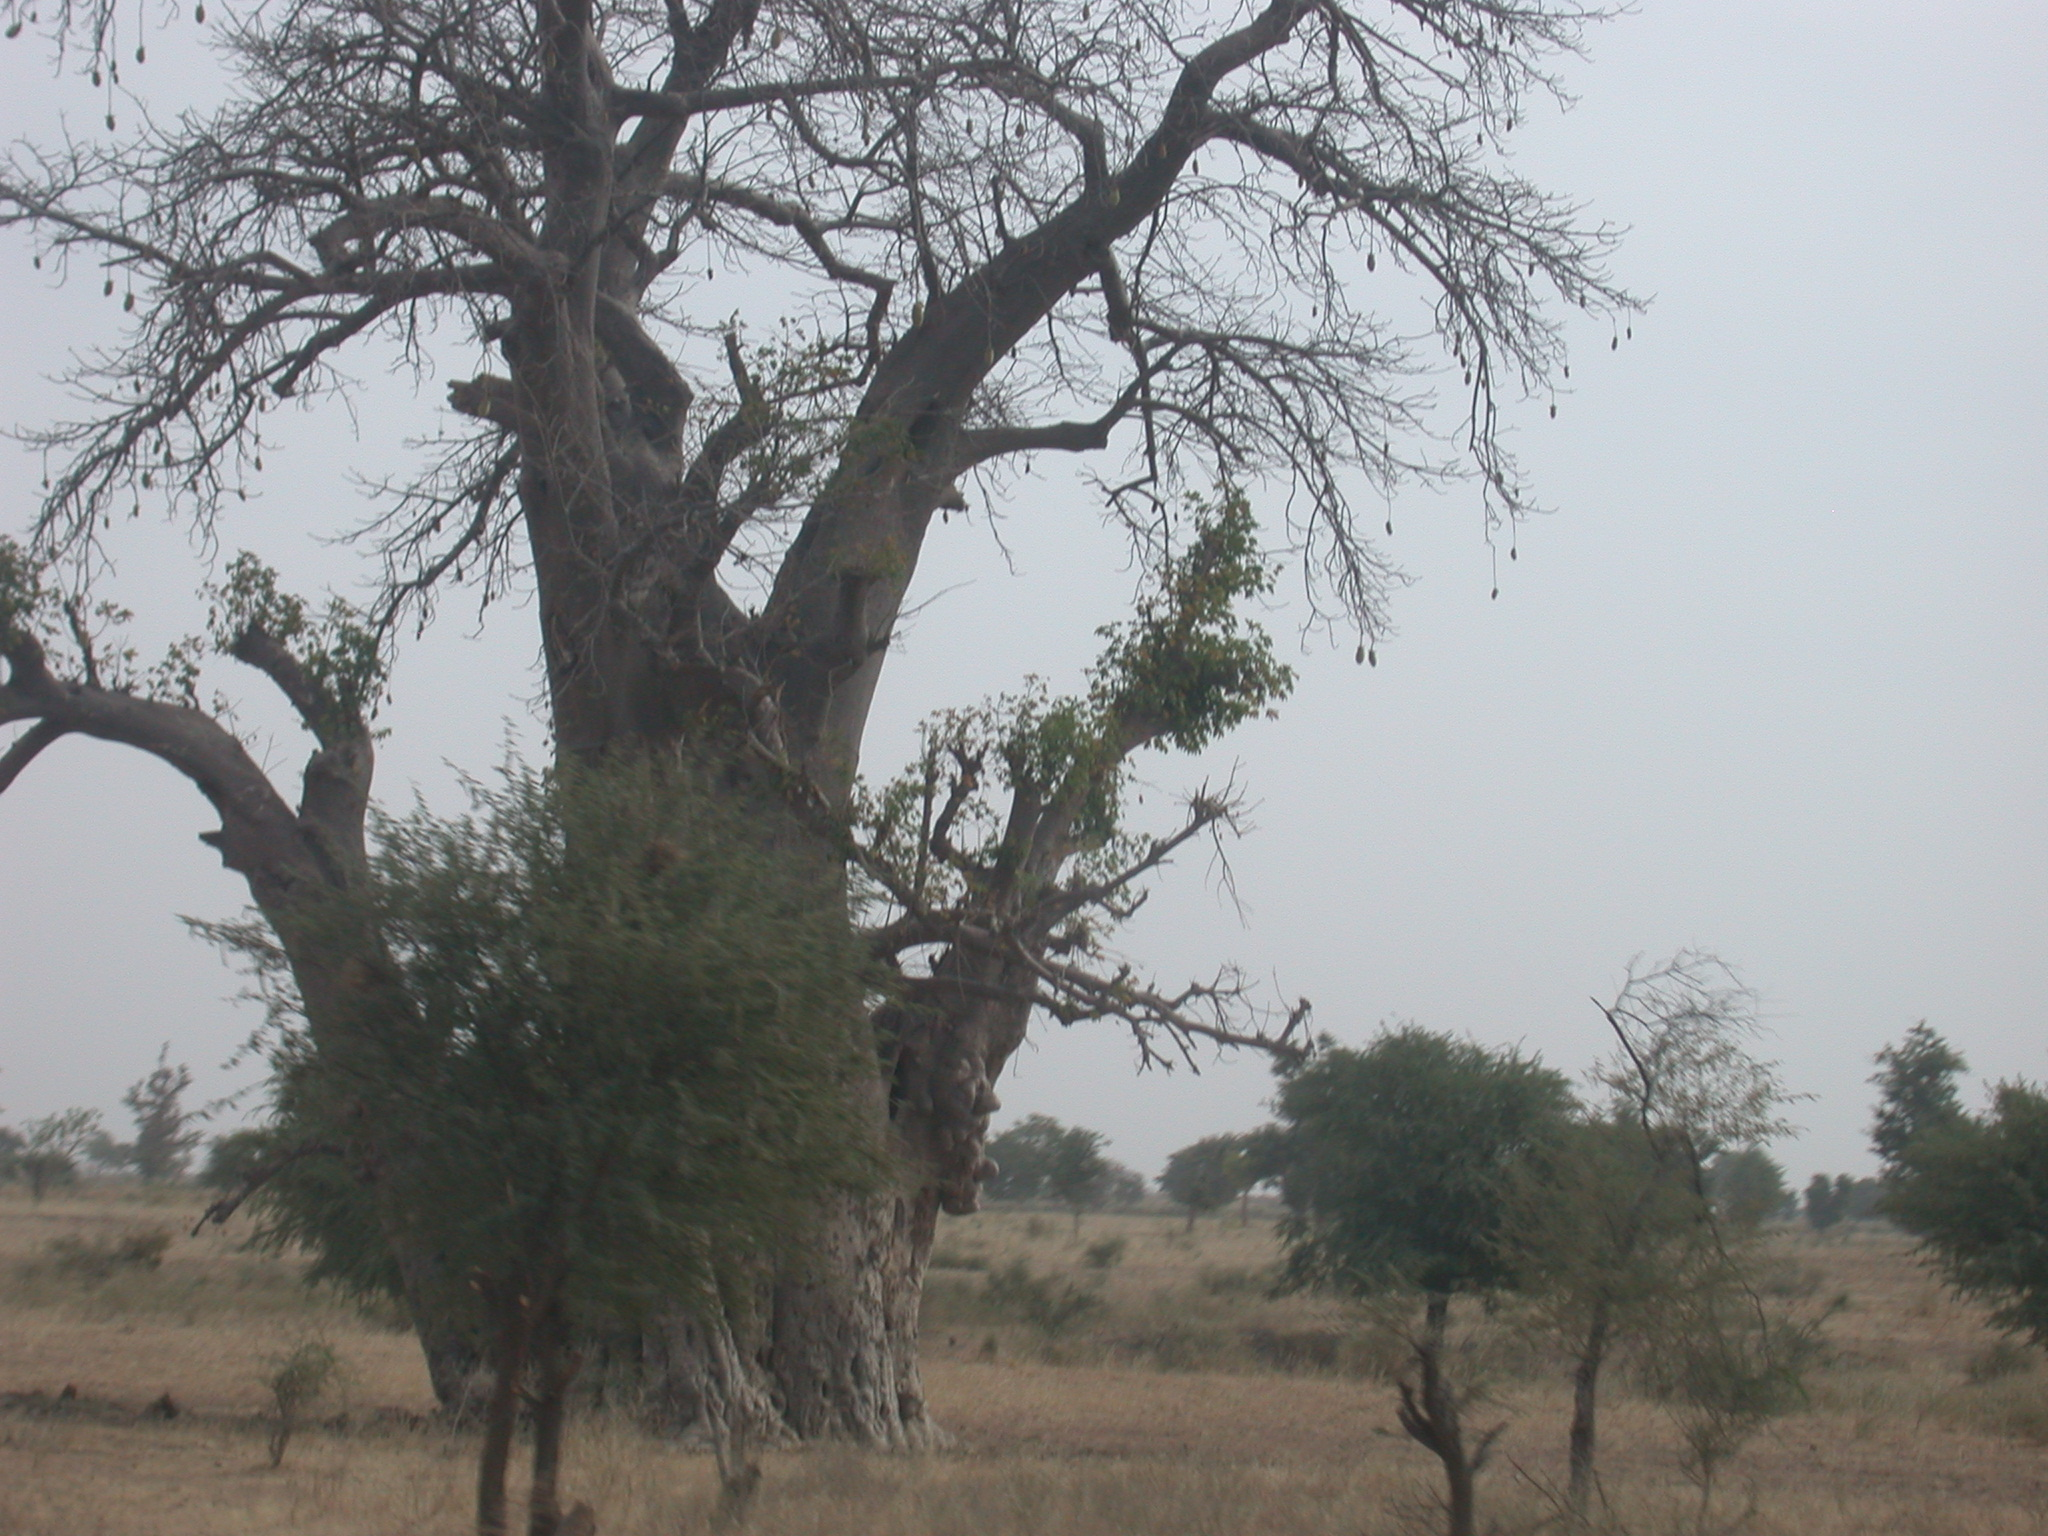 Baobab Tree on Route From Bamako to Timbuktu, Mali